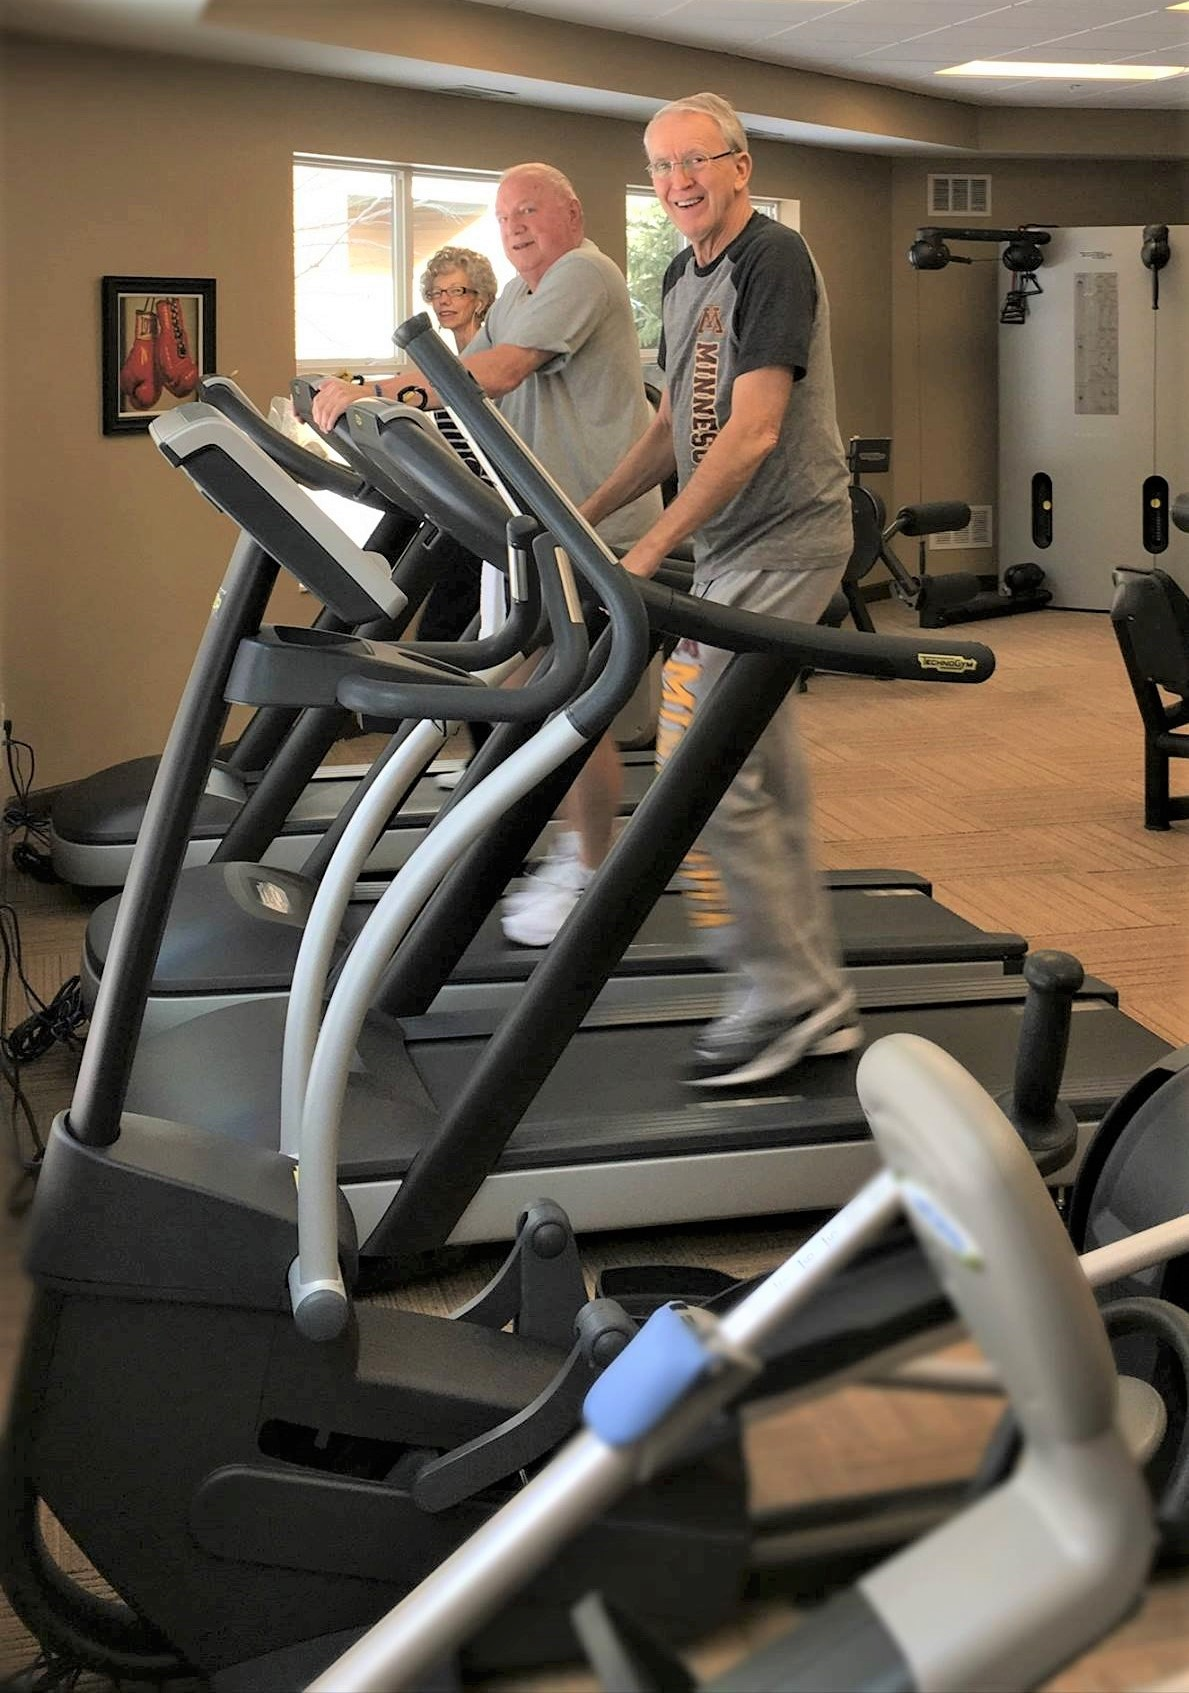 Resident's Work Out Center